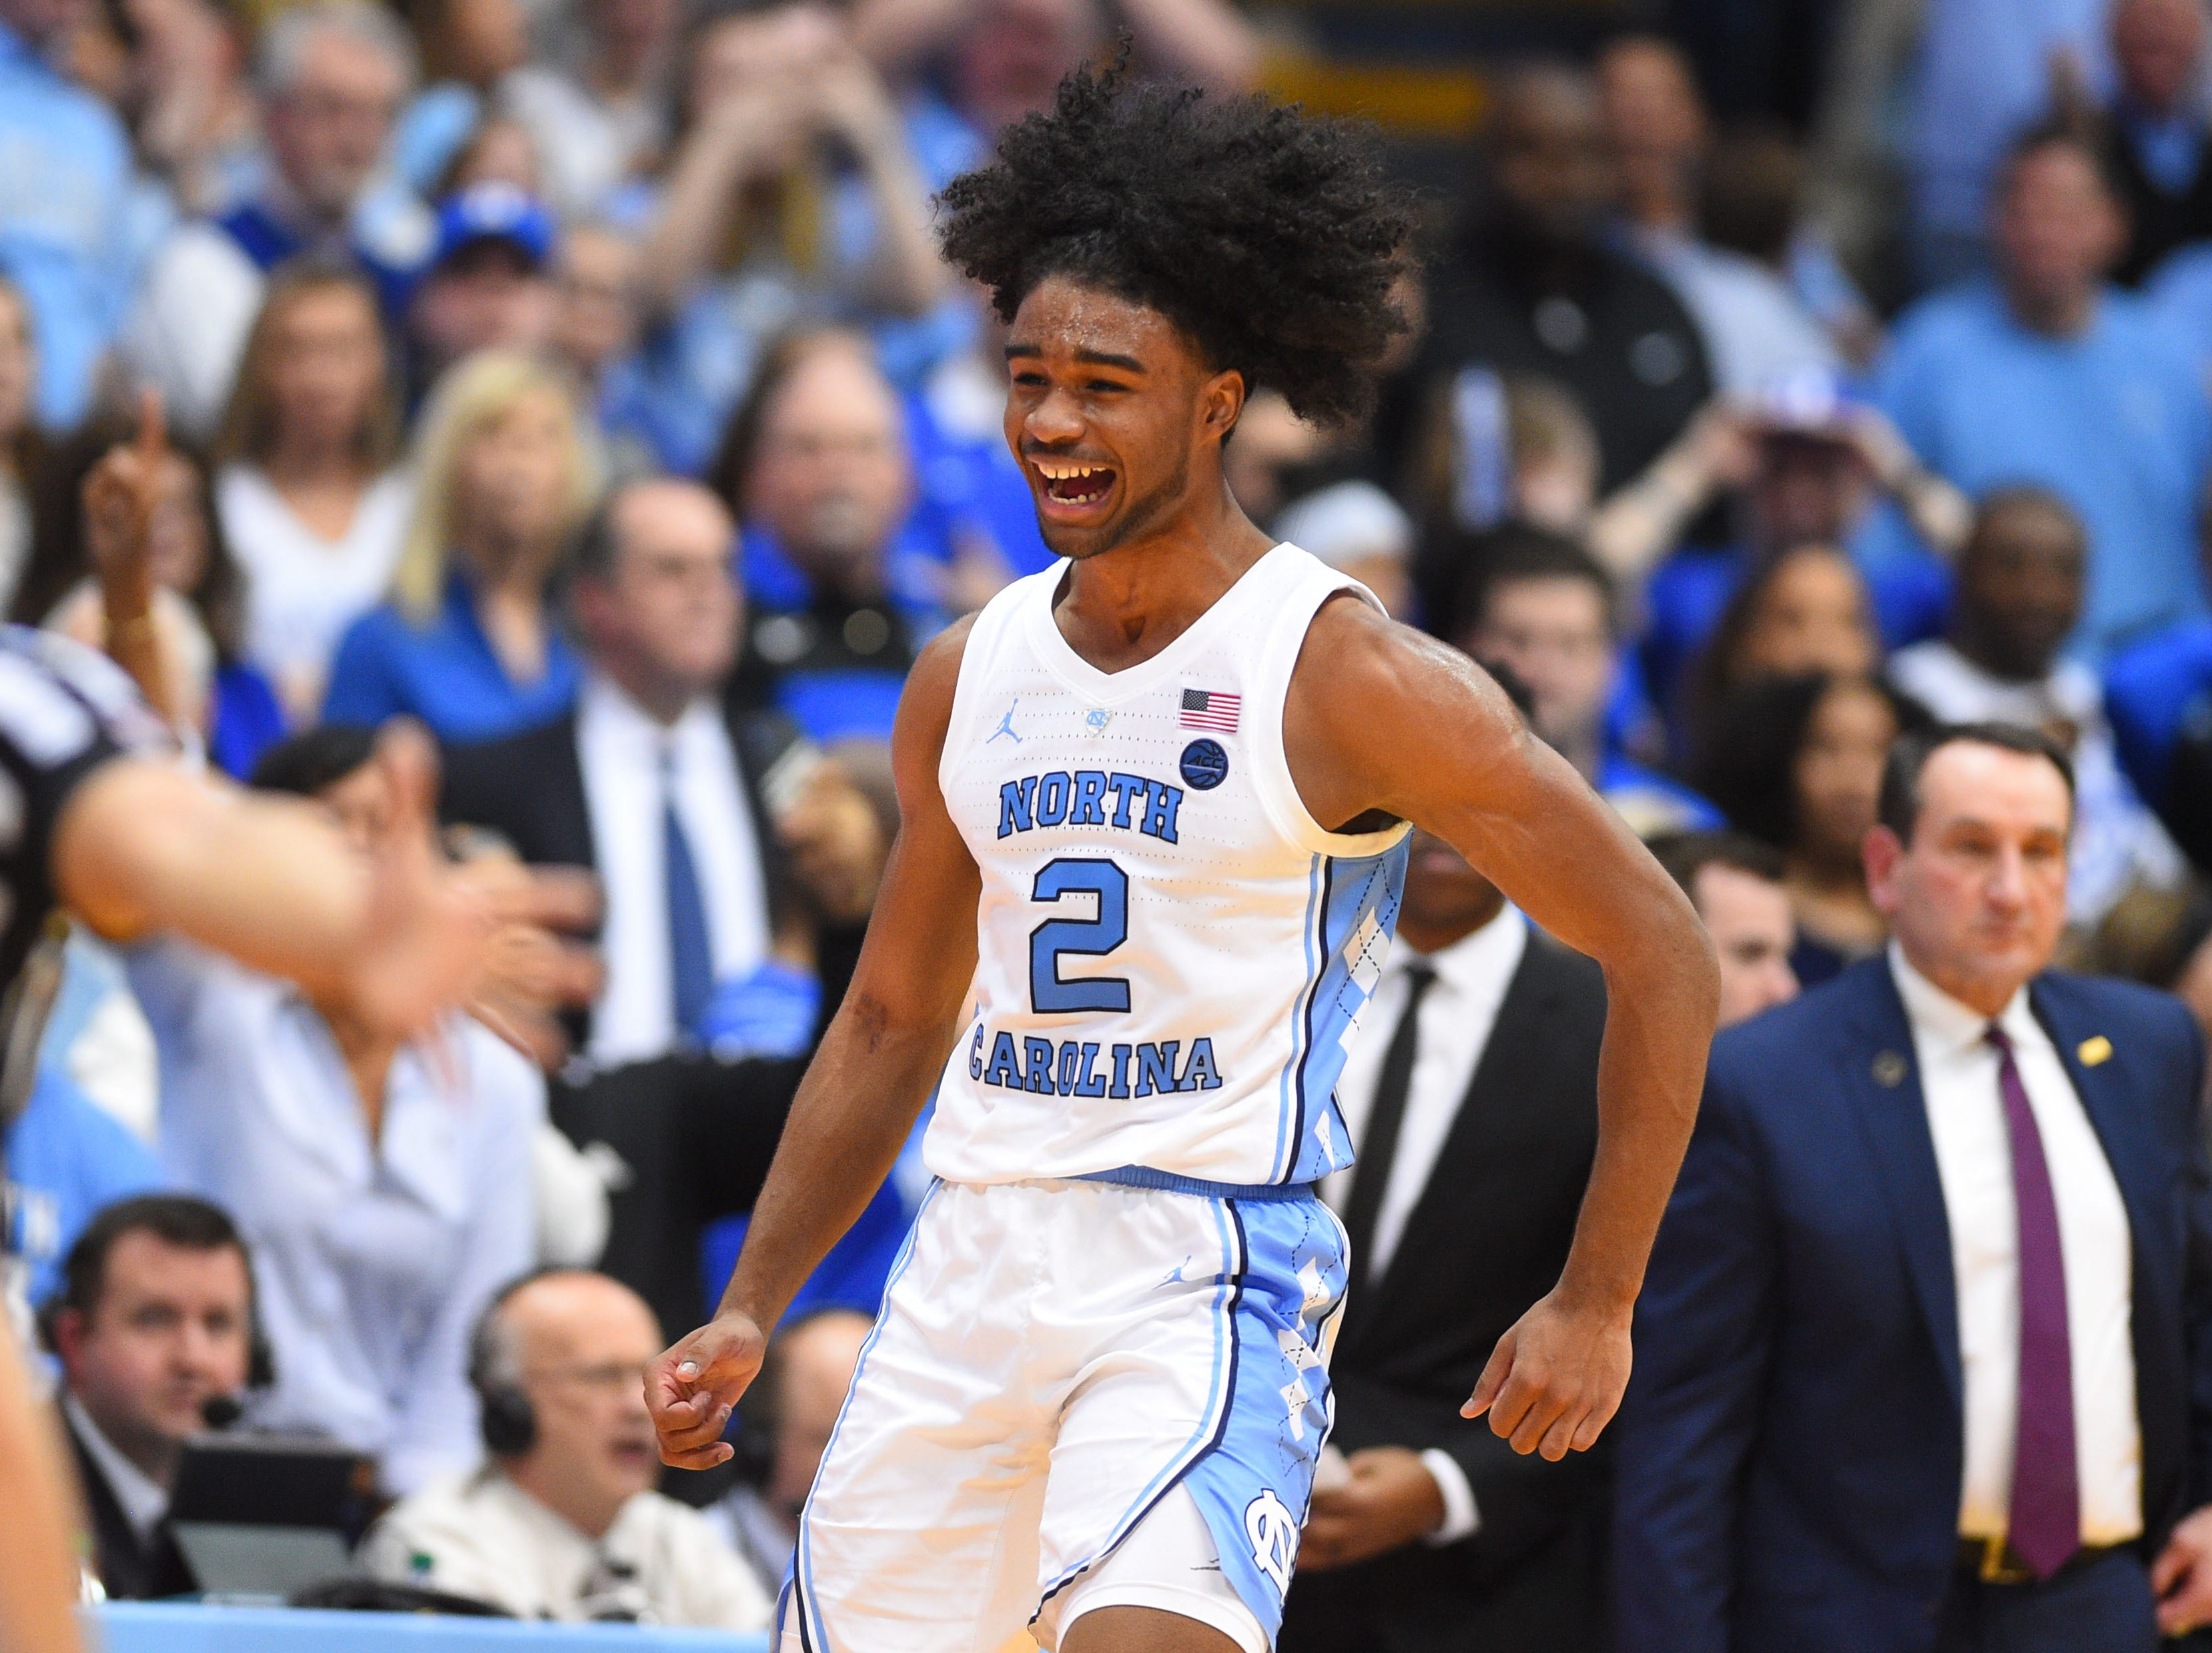 North Carolina (27-6), No. 1 seed in Midwest, at-large bid out of the Atlantic Coast Conference